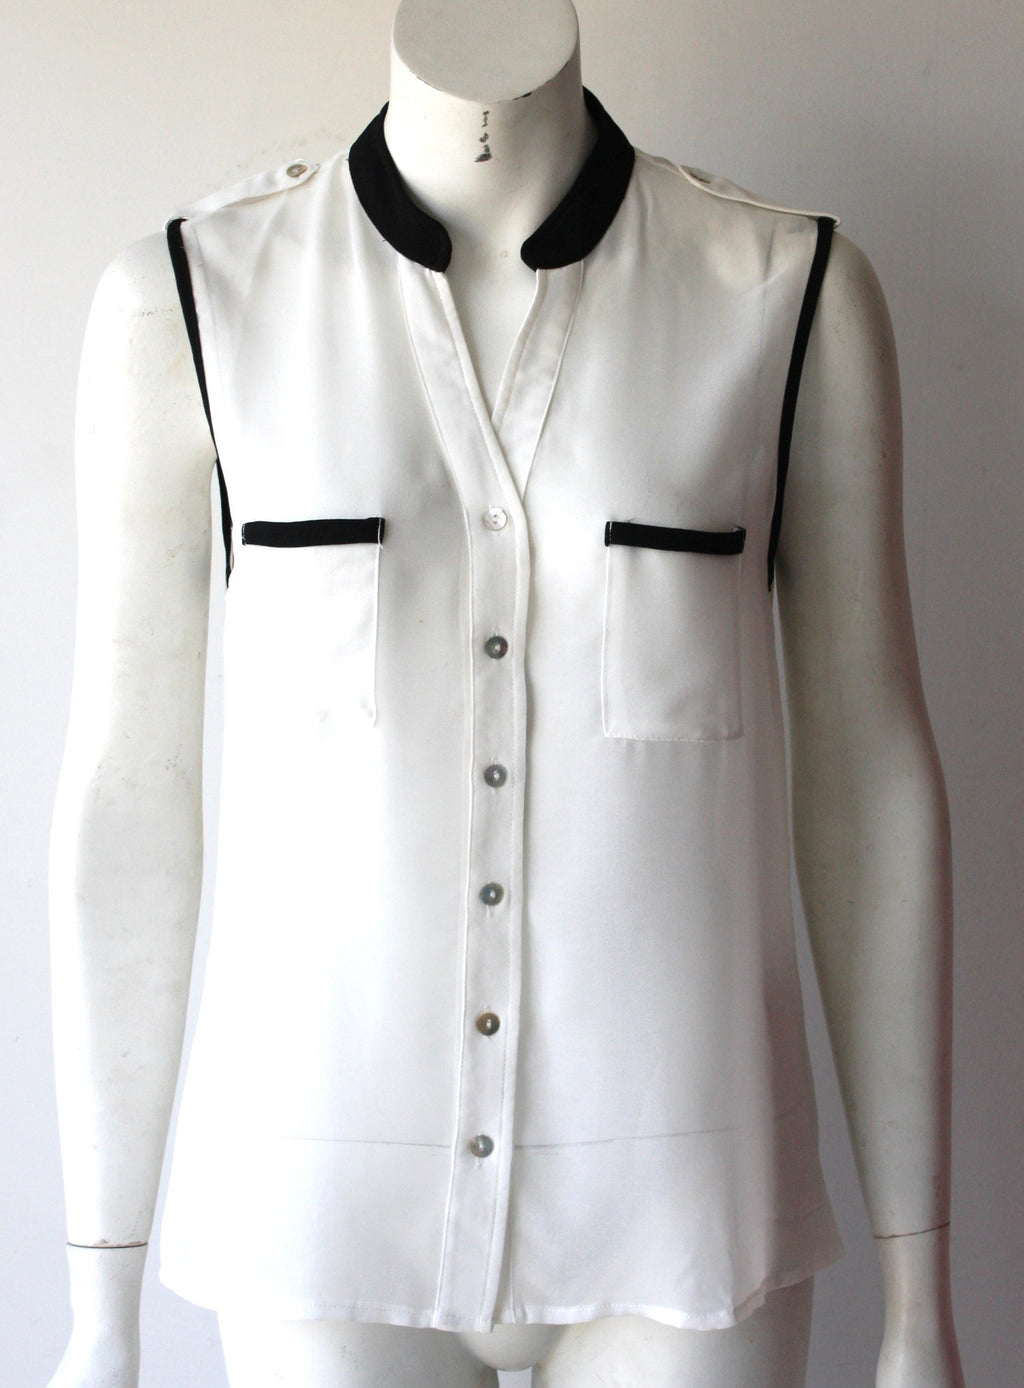 Timing Sleevless White & Black Button Up Blouse - Joyce's Closet  - 1